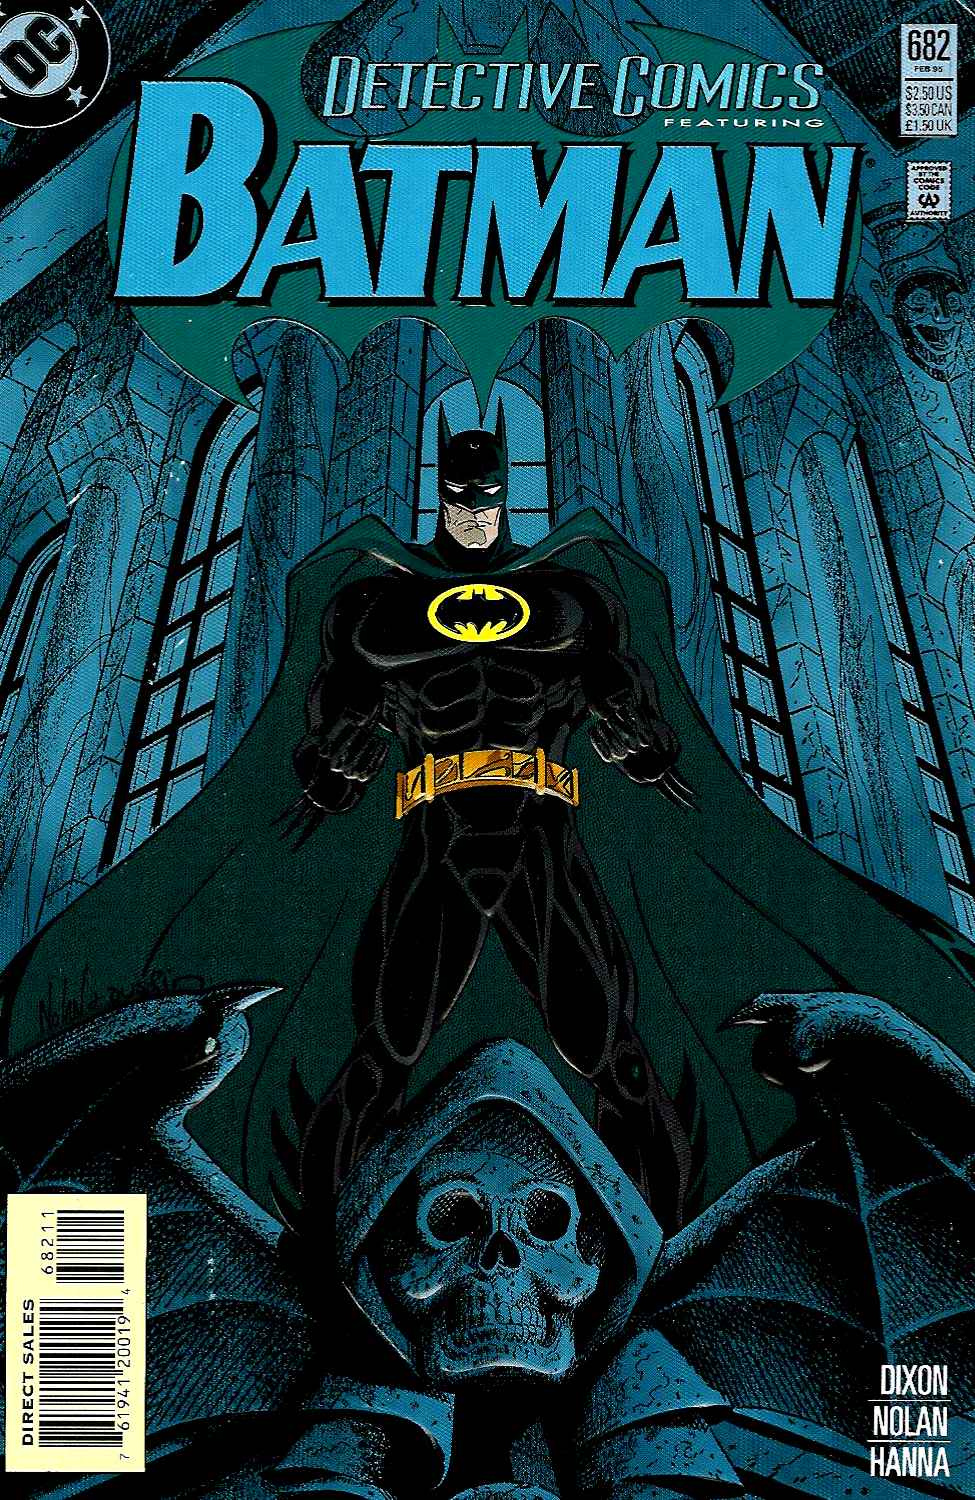 1995: Troika Batman – When Bruce Wayne returned to the mantle, the suit went back to black, keeping the yellow oval encasement.